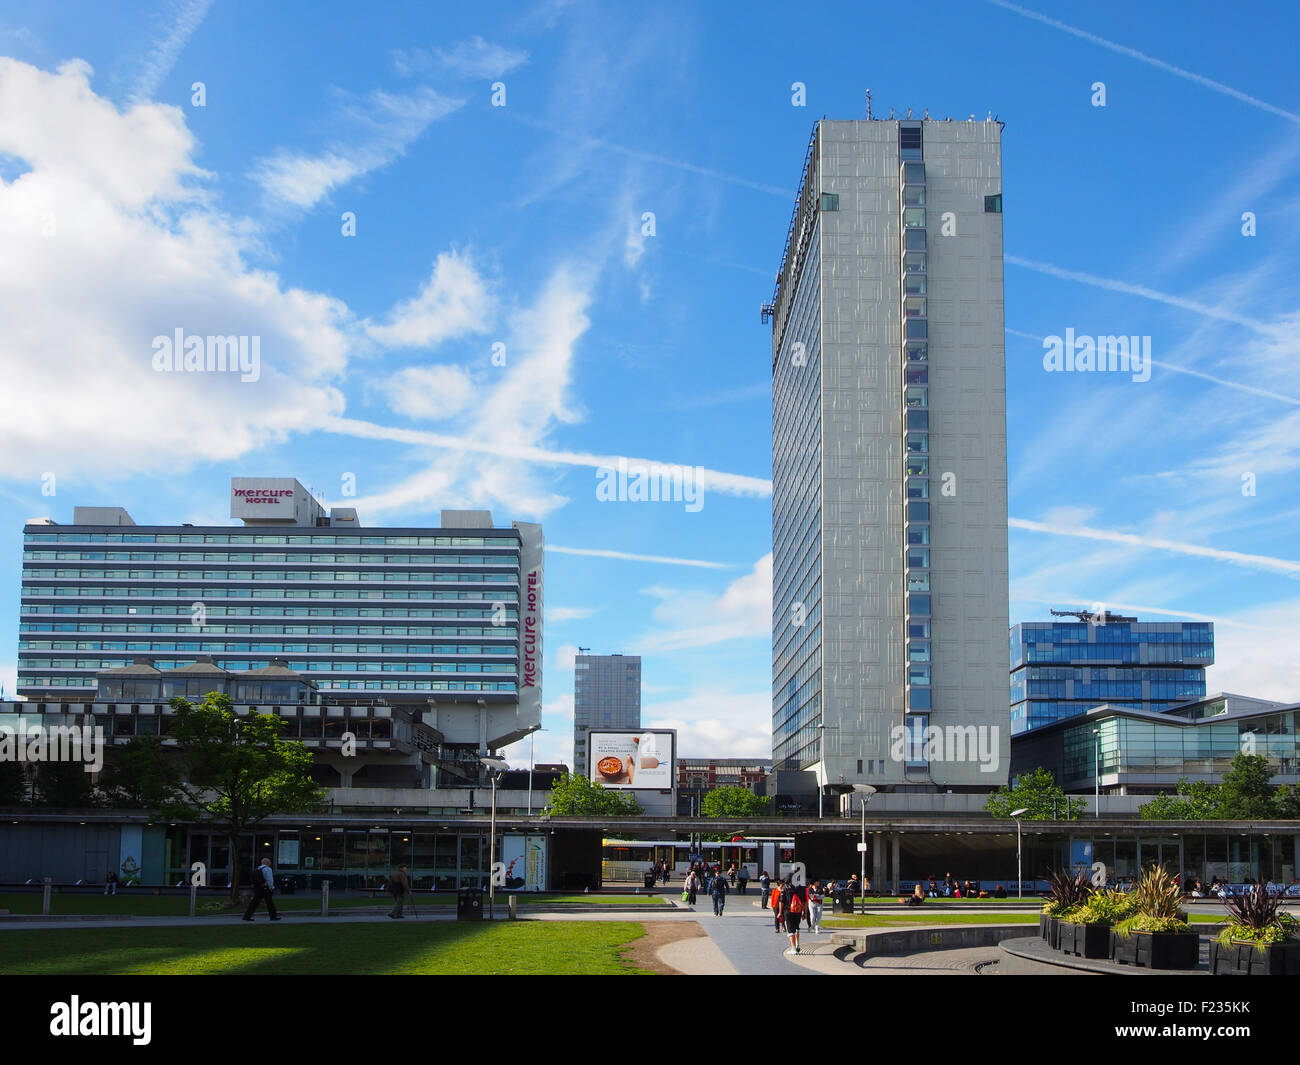 View of Piccadilly Gardens, Manchester, looking towards Piccadilly Plaza. - Stock Image